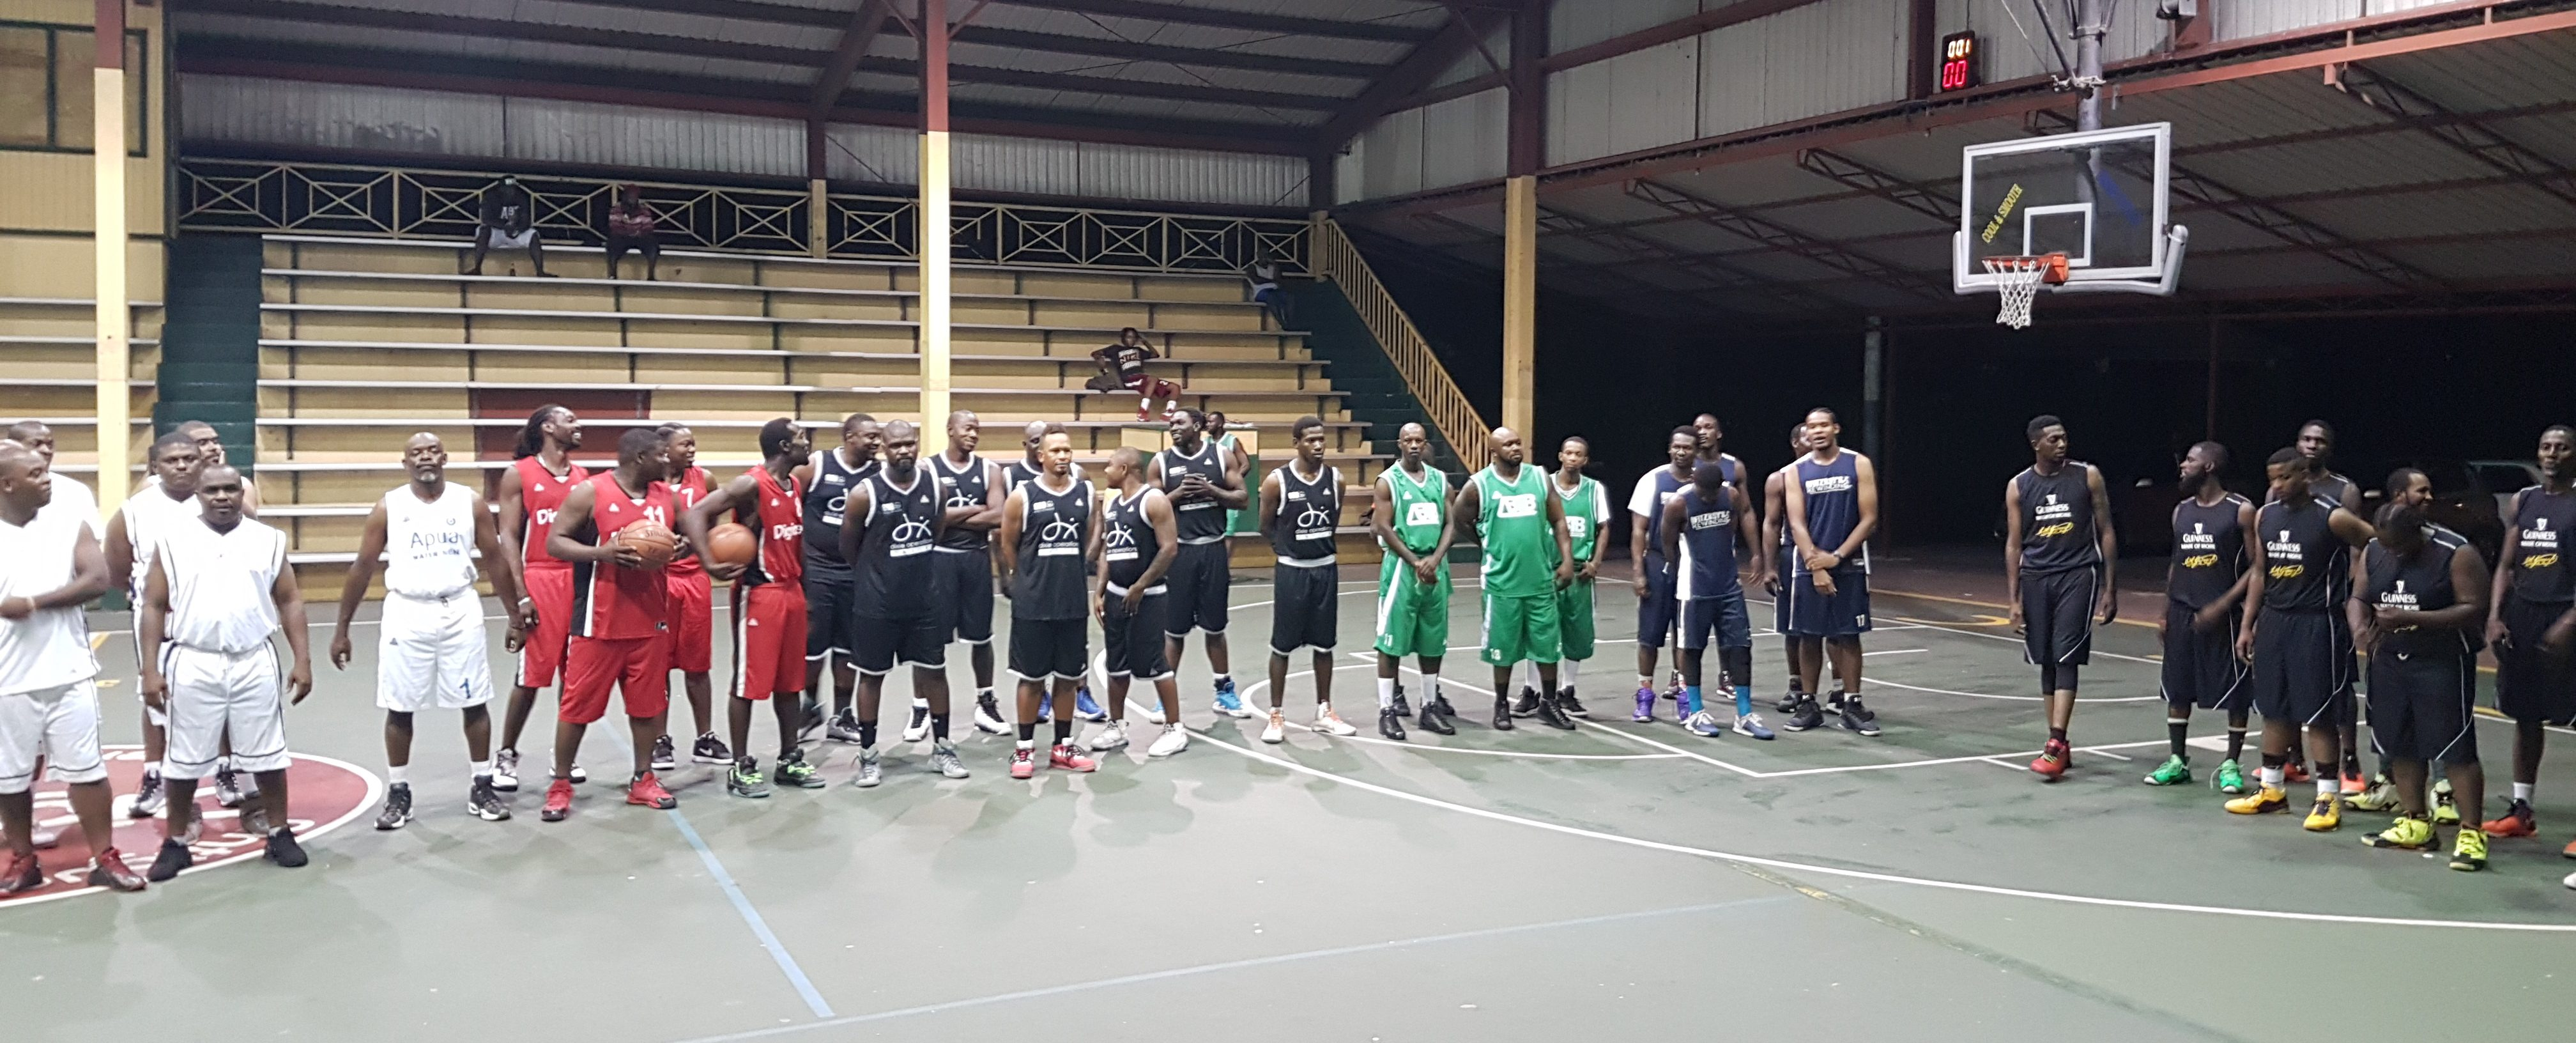 Kennedy's Edge Out Transport Board in Business Basketball League